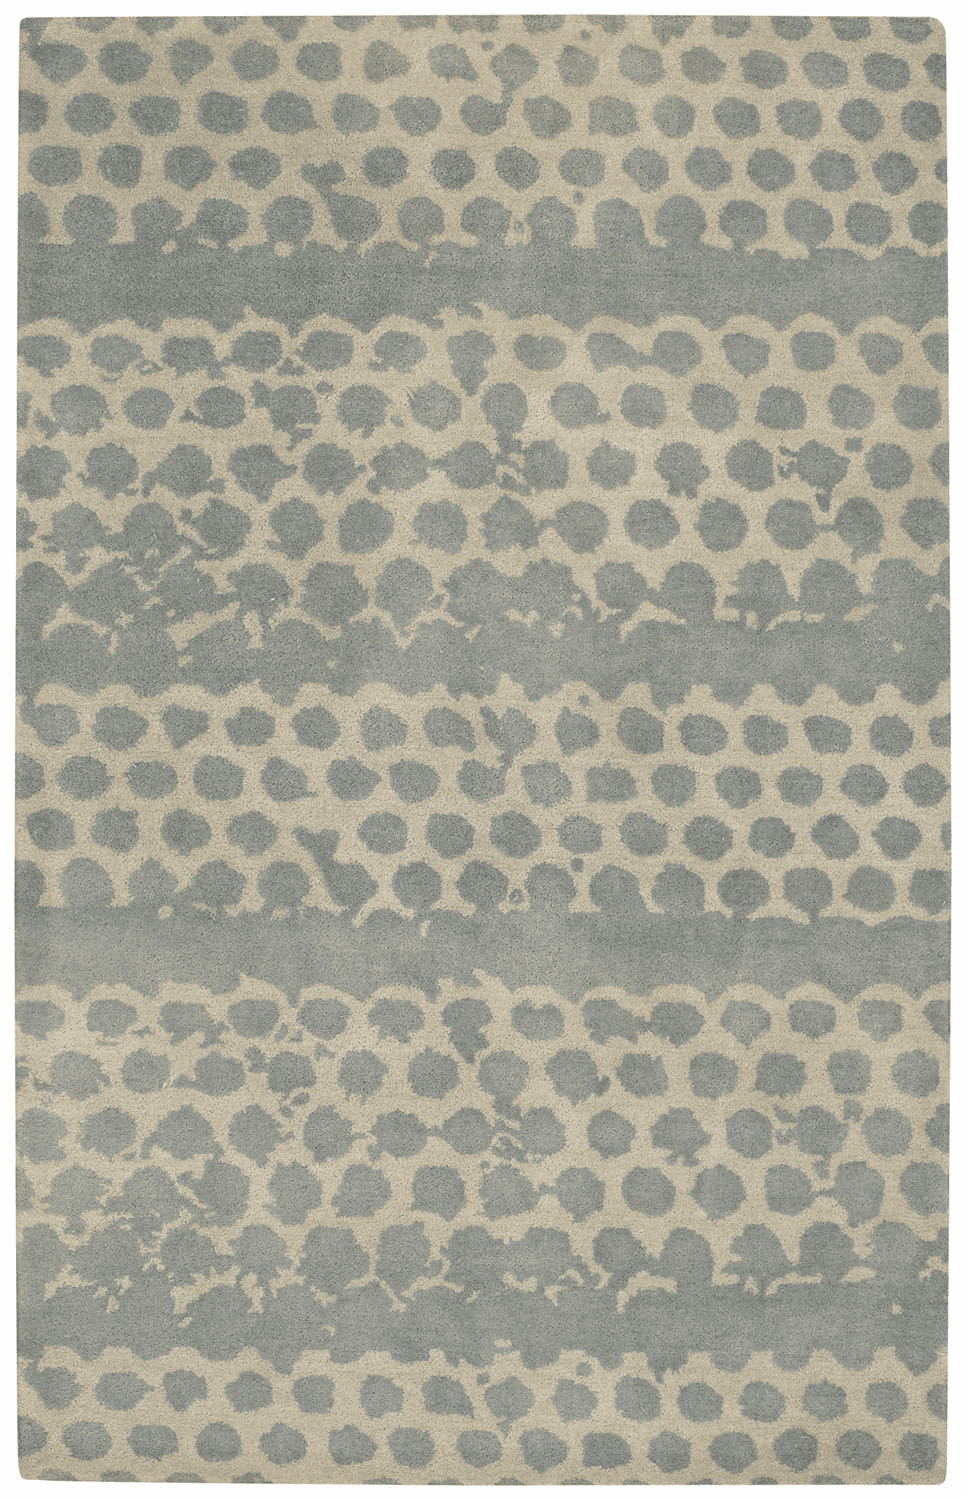 Hand Tufted Spa Rug